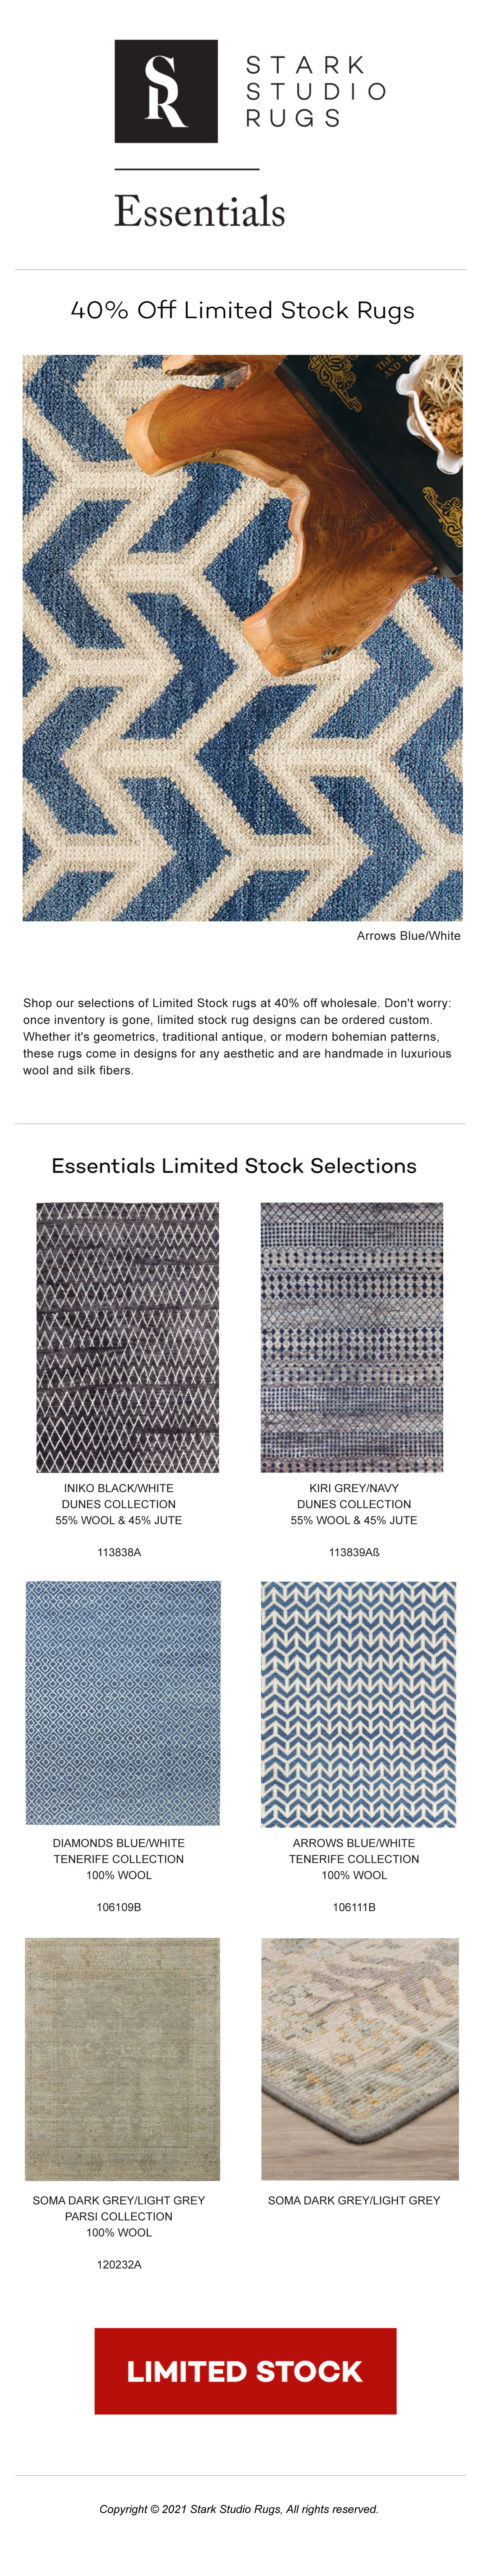 STARK STUDIO RUGS - Before They Go: 40% Limited Stock Essentials Rugs